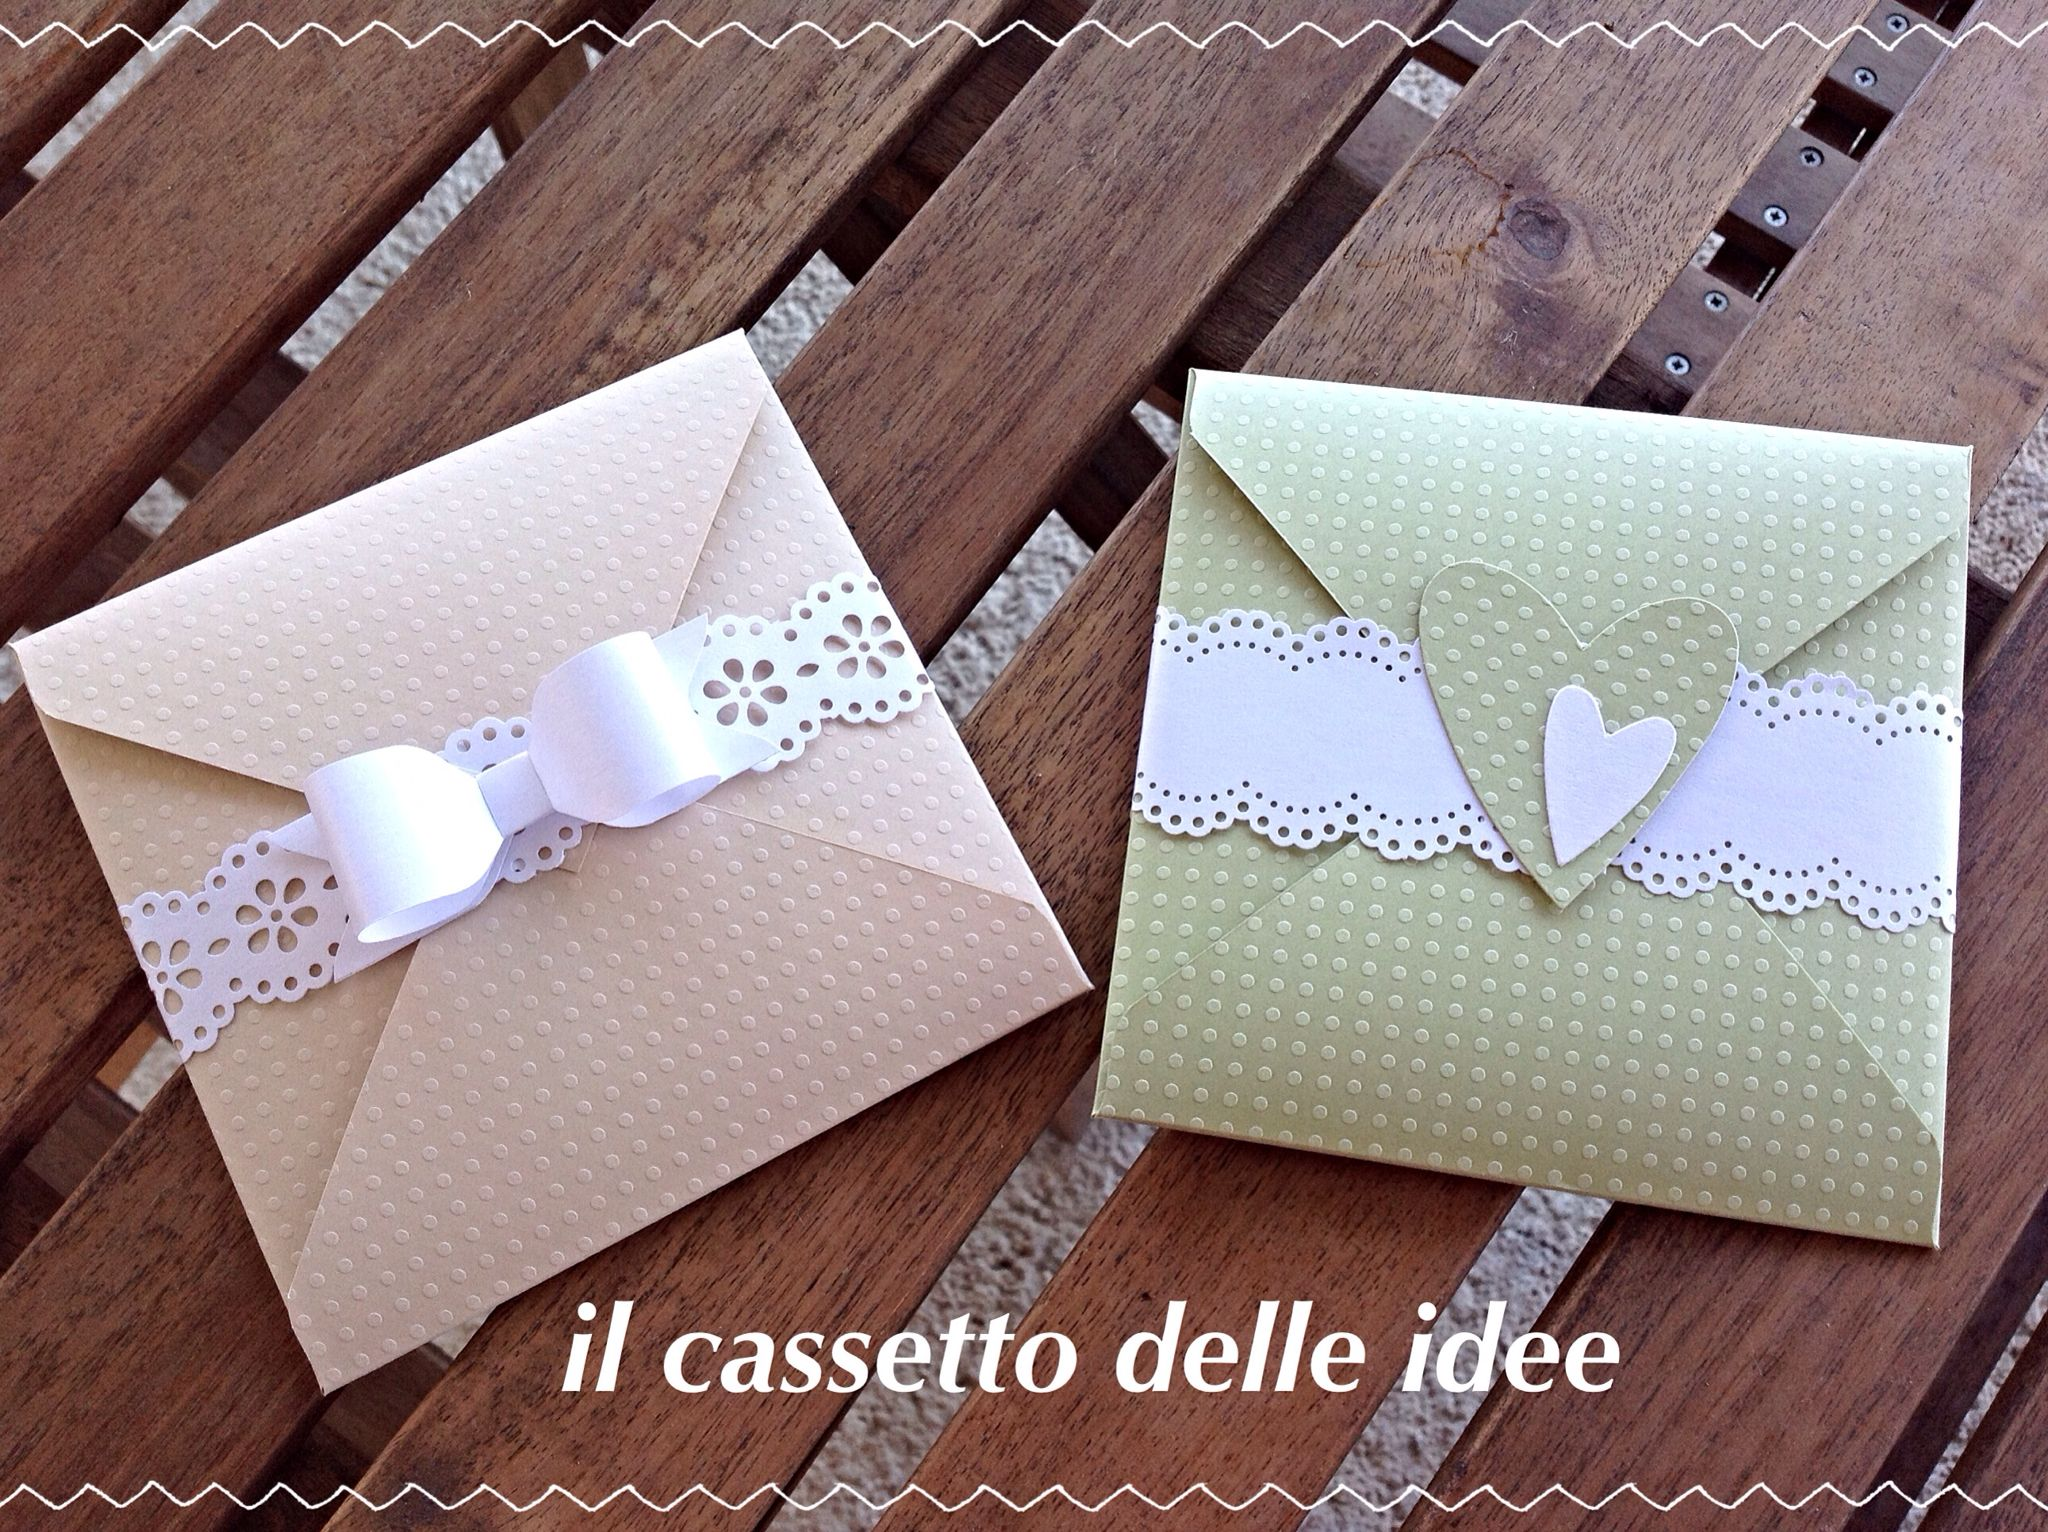 Amato biglietto portasoldi matrimonio | Cartes mariage / wedding cards  HX13